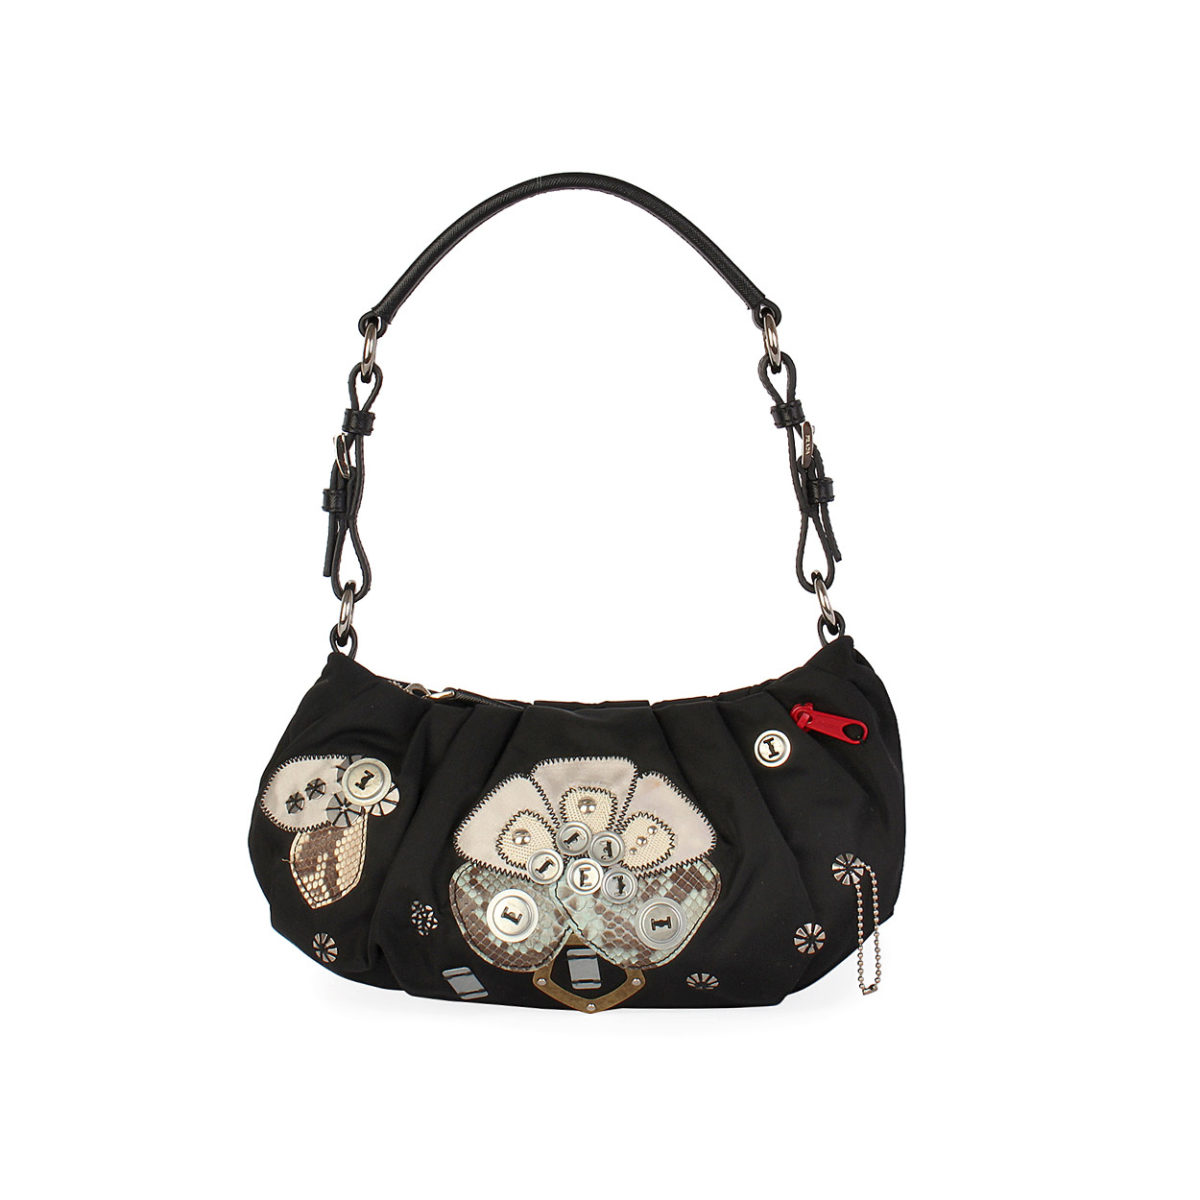 17820d6dd0ef ireland prada nylon leather shoulder bag 5070b b4d45  shopping prada nylon  tessuto flower embroidered shoulder bag black 26dc0 1a085